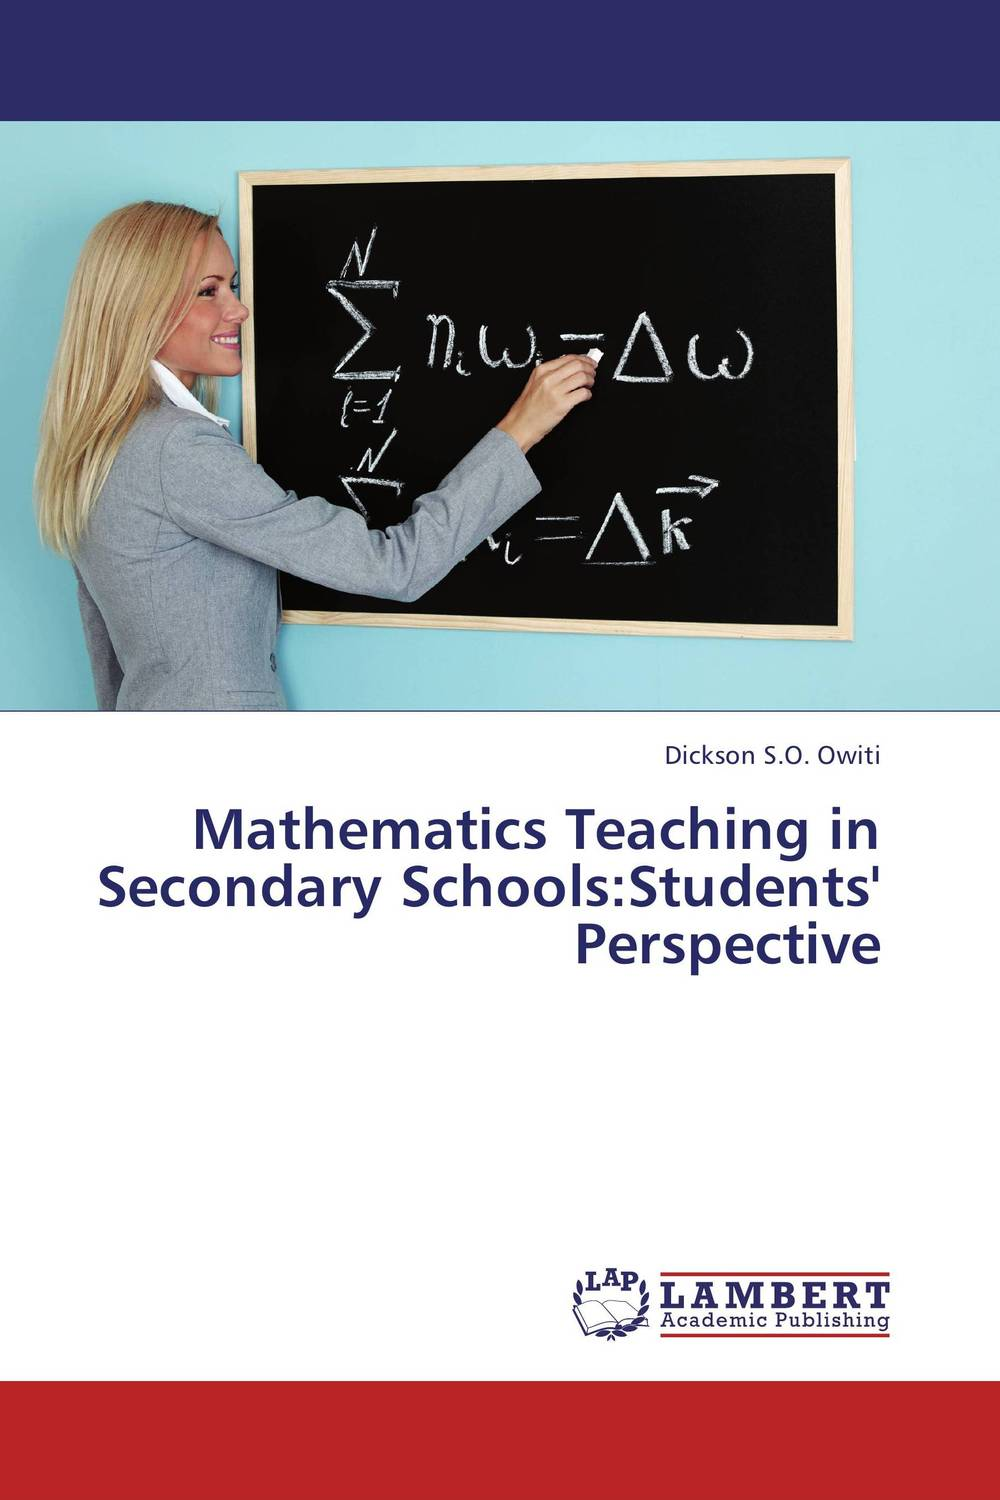 Mathematics Teaching in Secondary Schools:Students' Perspective praxis ii middle school mathematics 5169 book online praxis teacher certification test prep